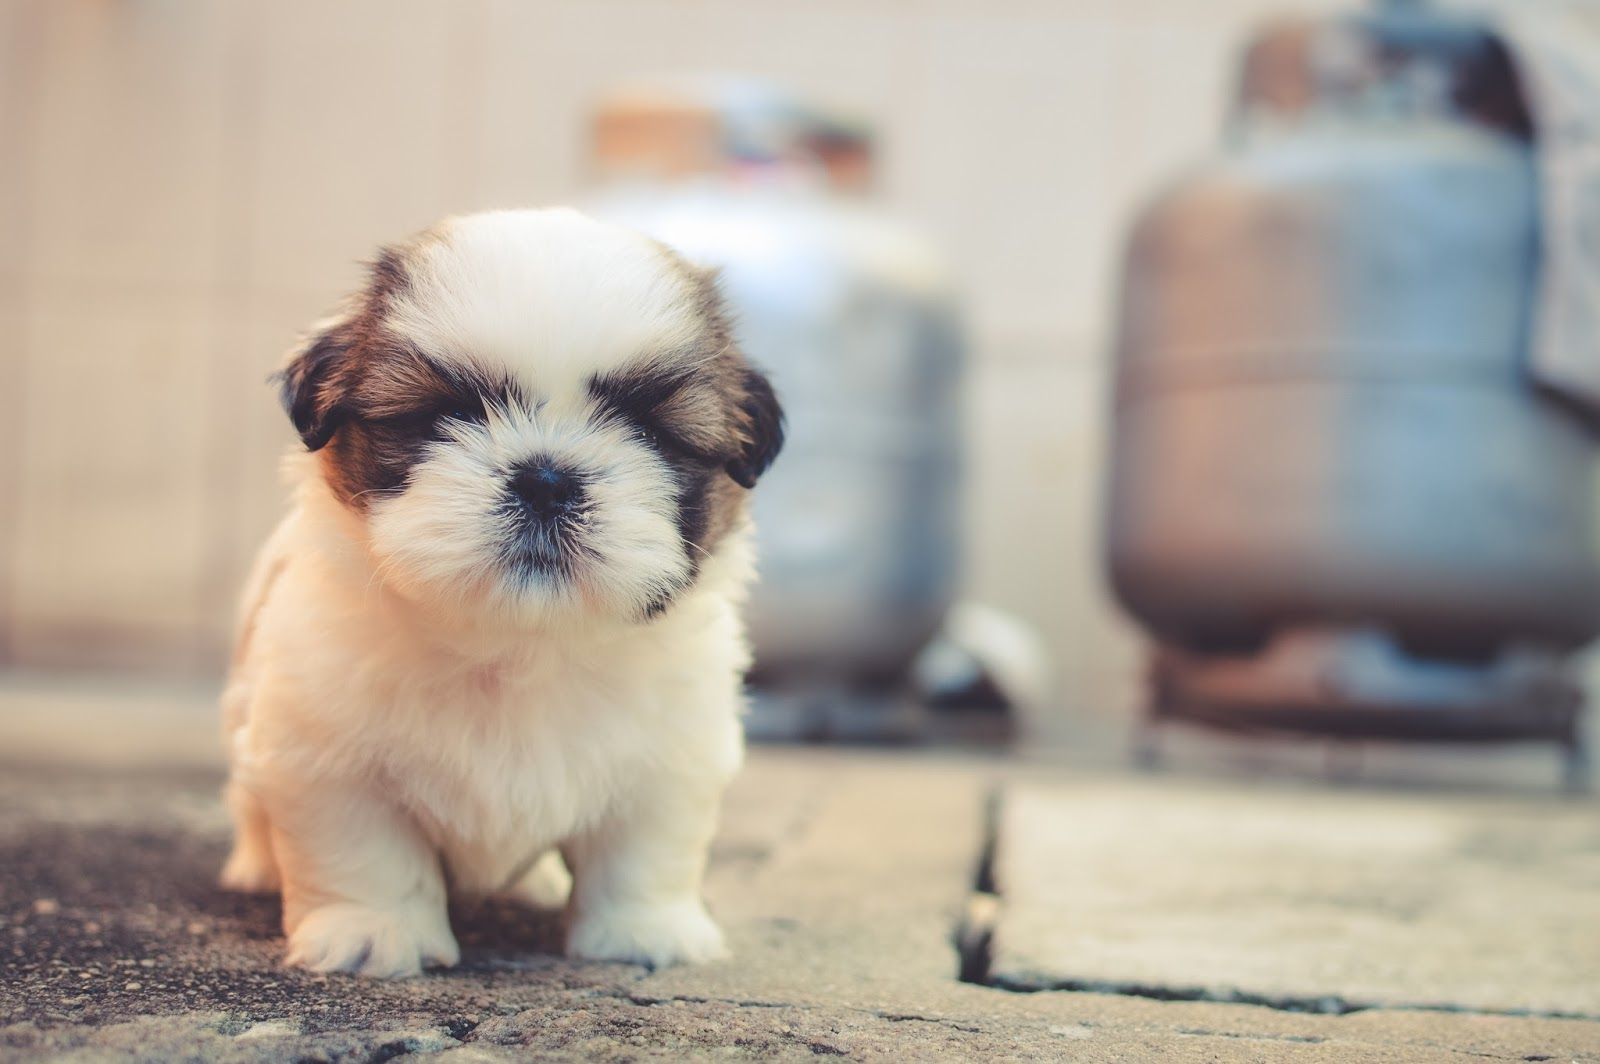 cute fluffy puppy